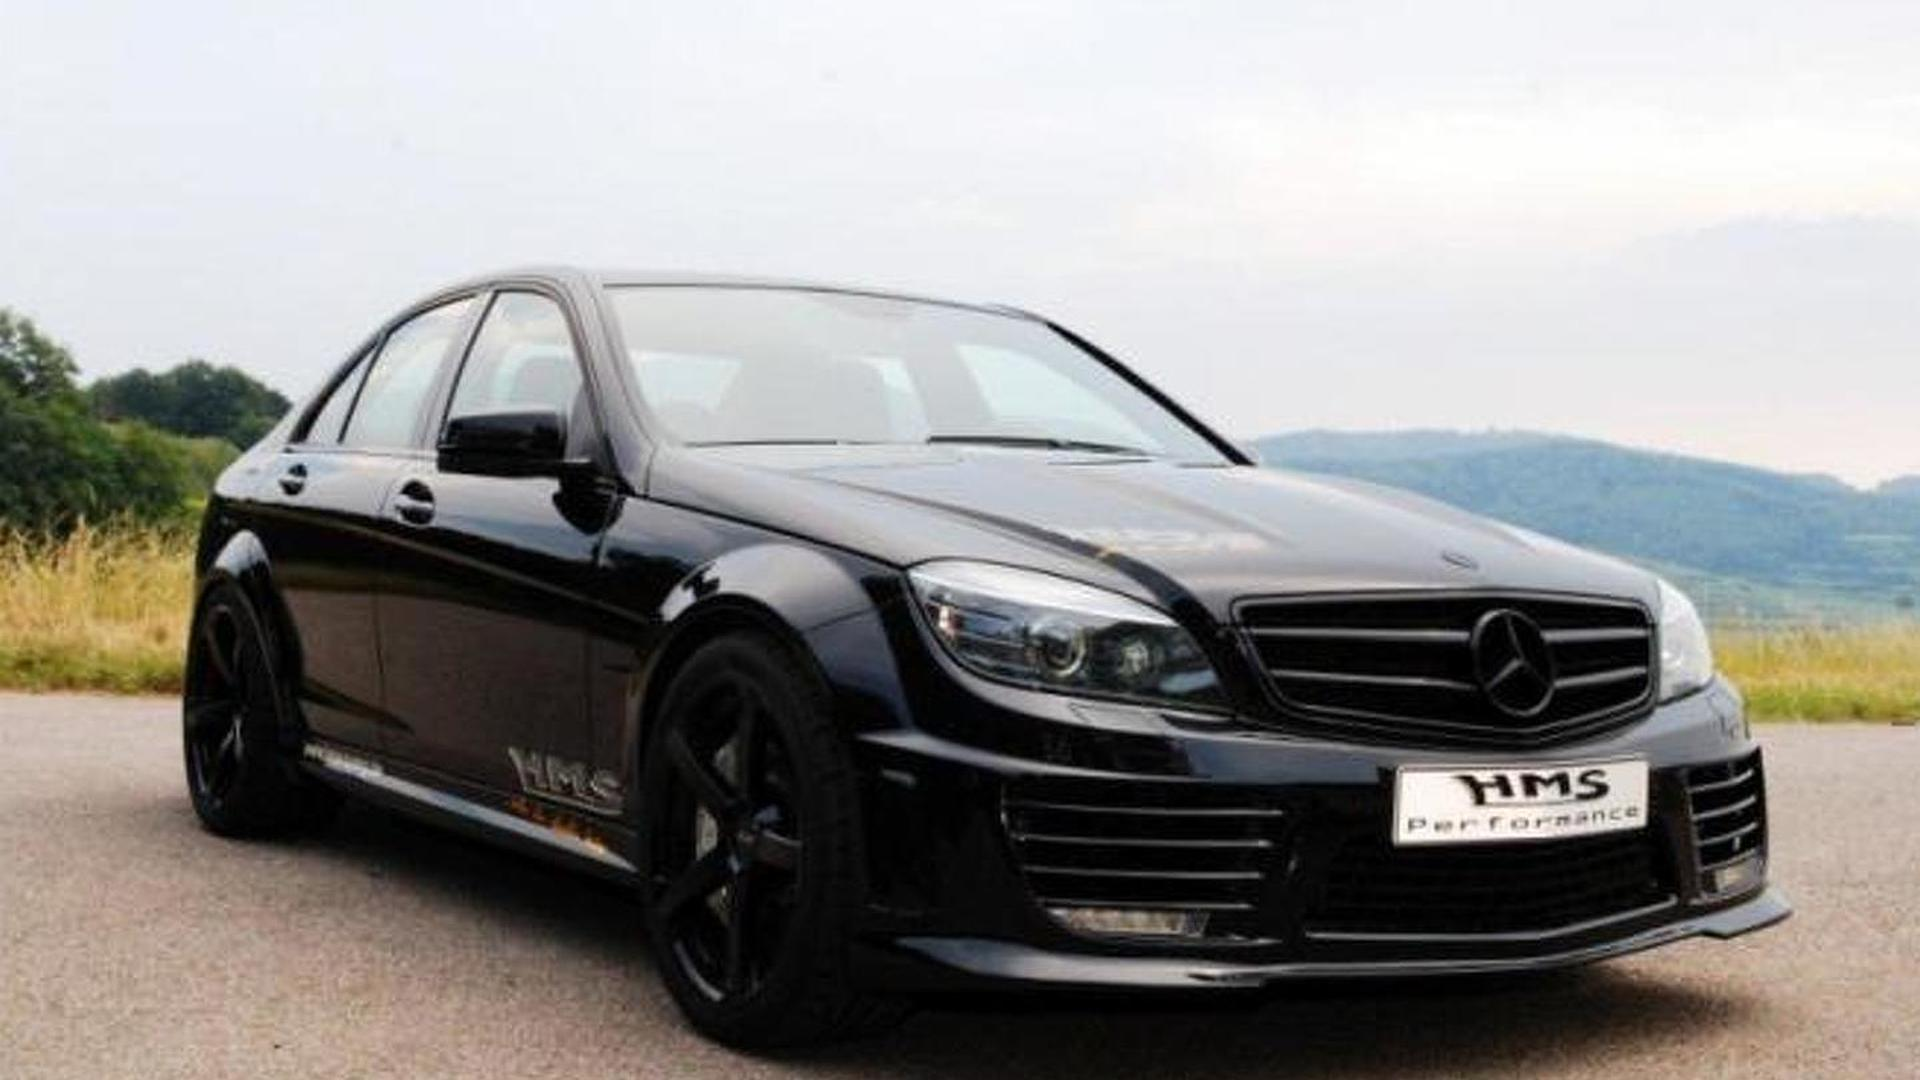 Supercharged Mercedes C63 Amg By Hms Tuning Outputs 690 Hp